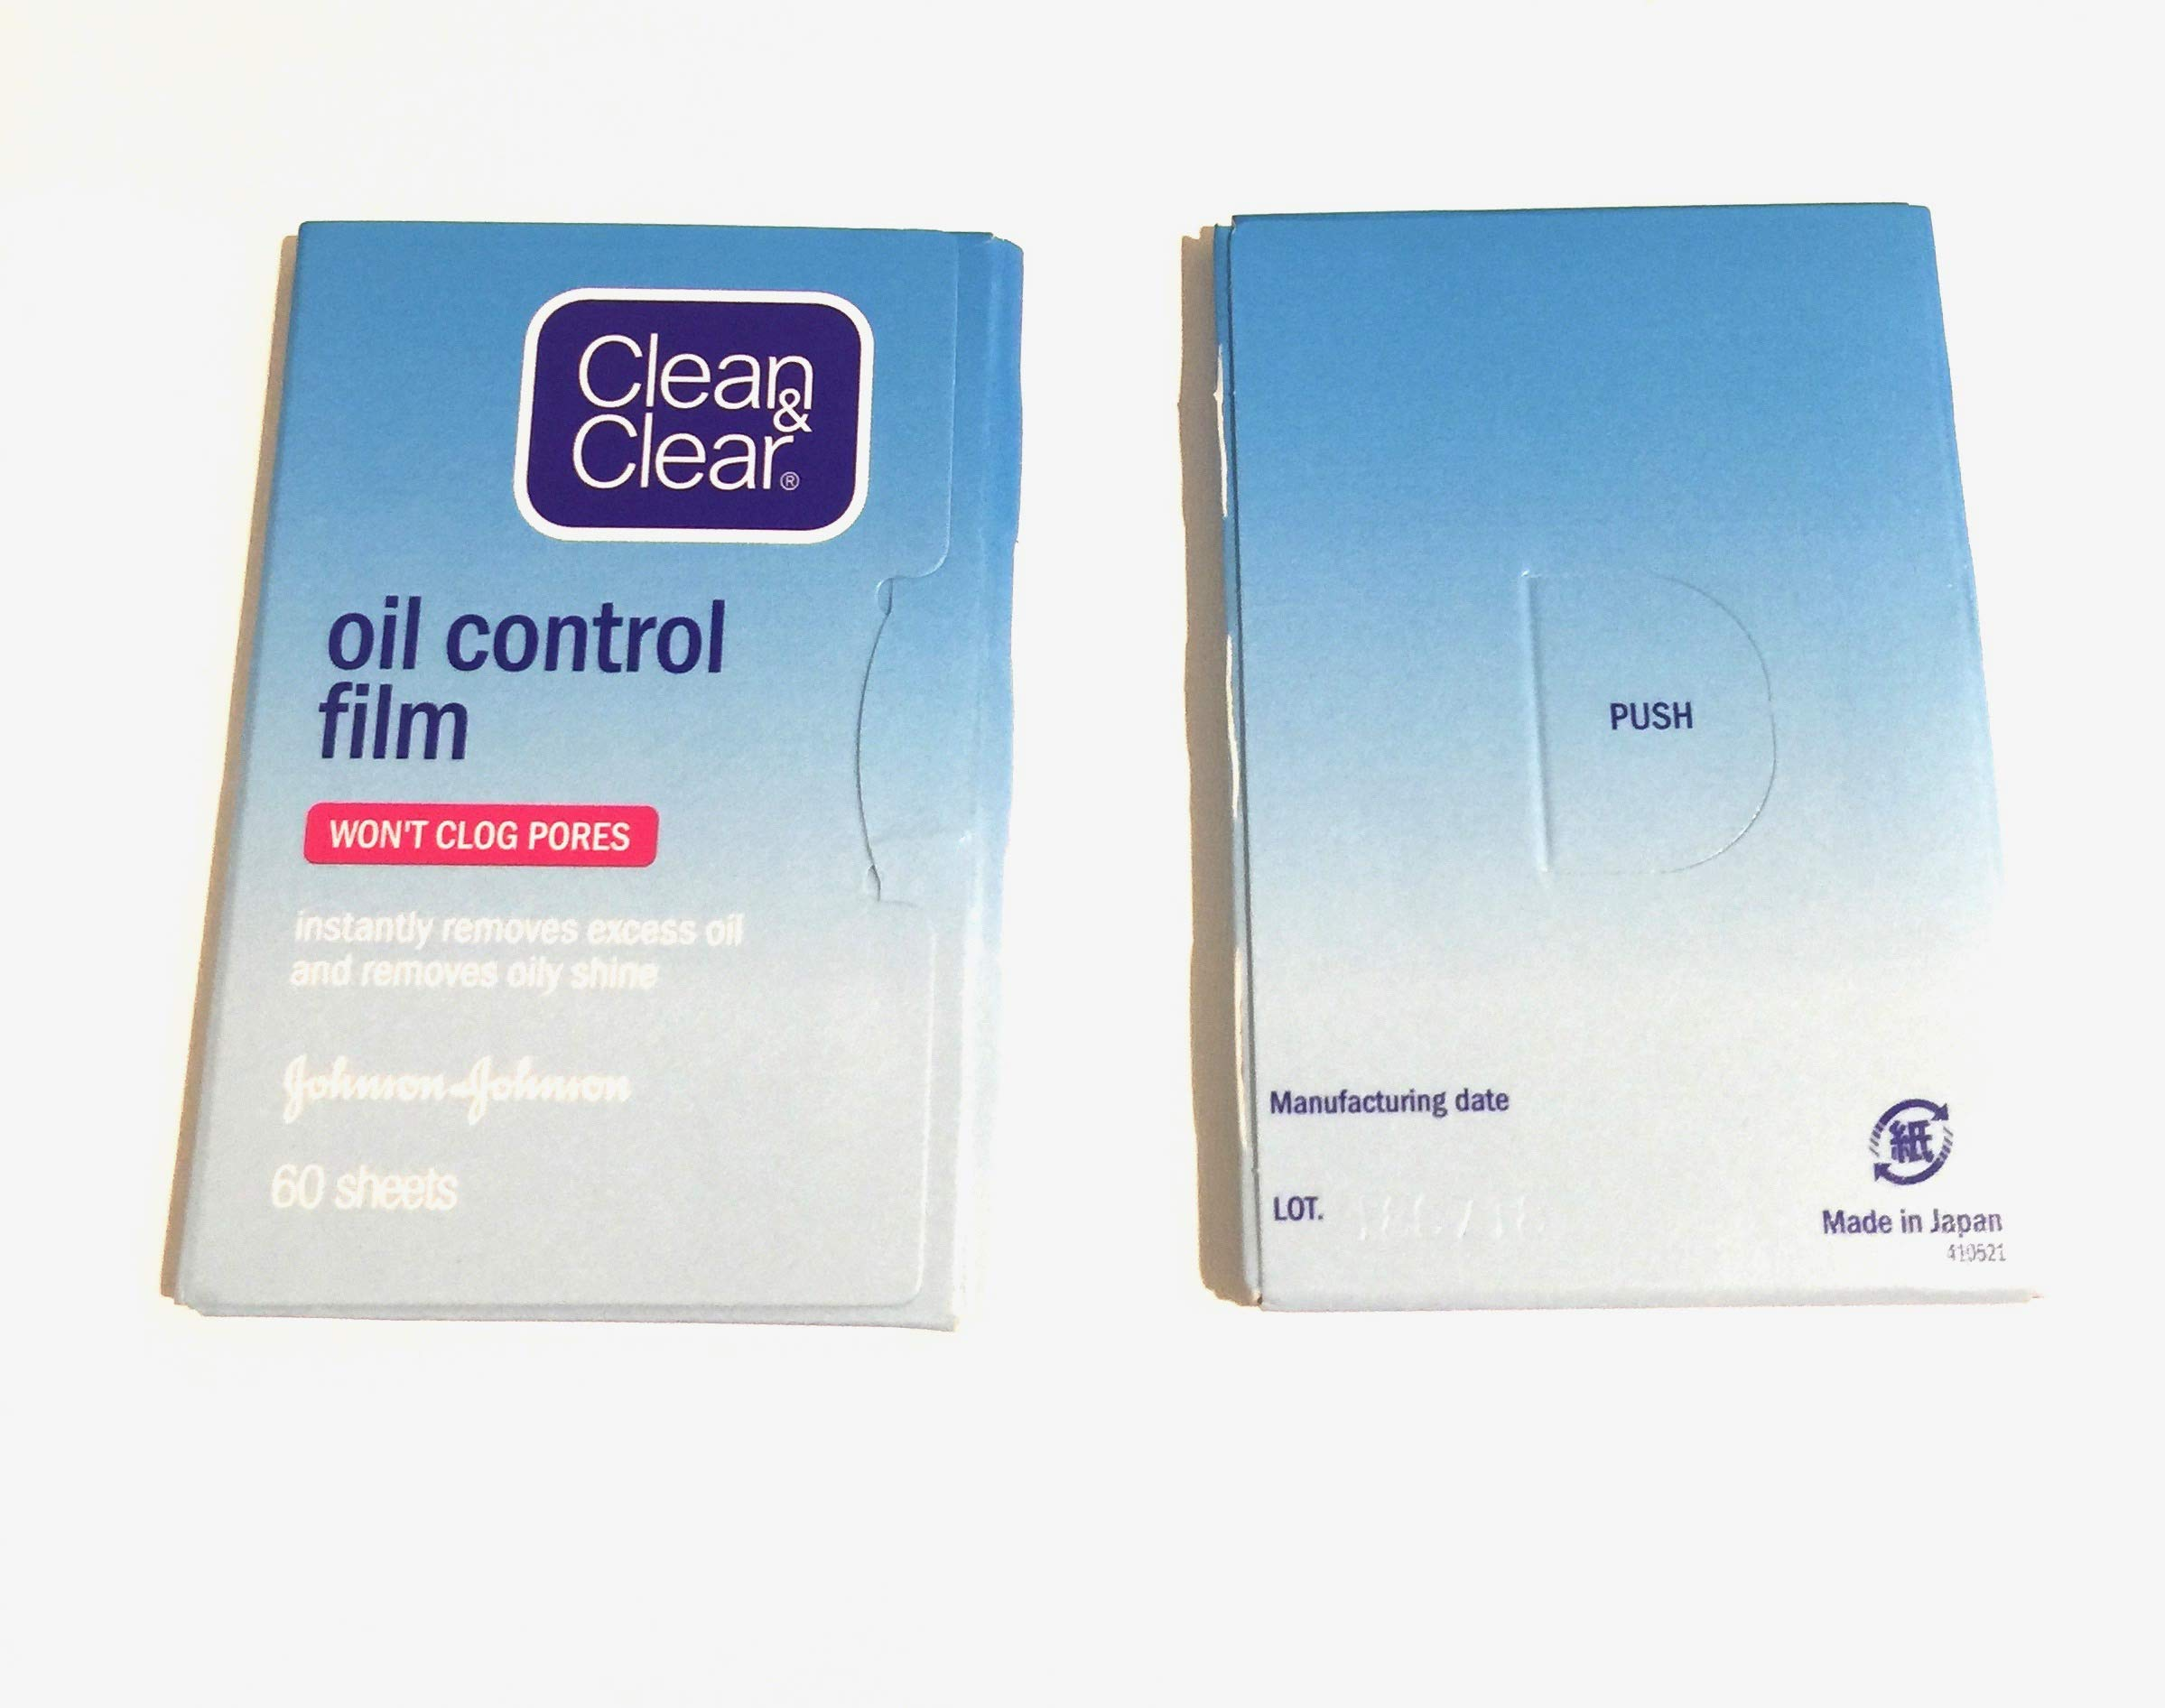 Clean & Clear Oil Control Film Blotting Paper, Oil-absorbing Sheets for Face, 60 Sheets (Pack of 2) by Clean & Clear